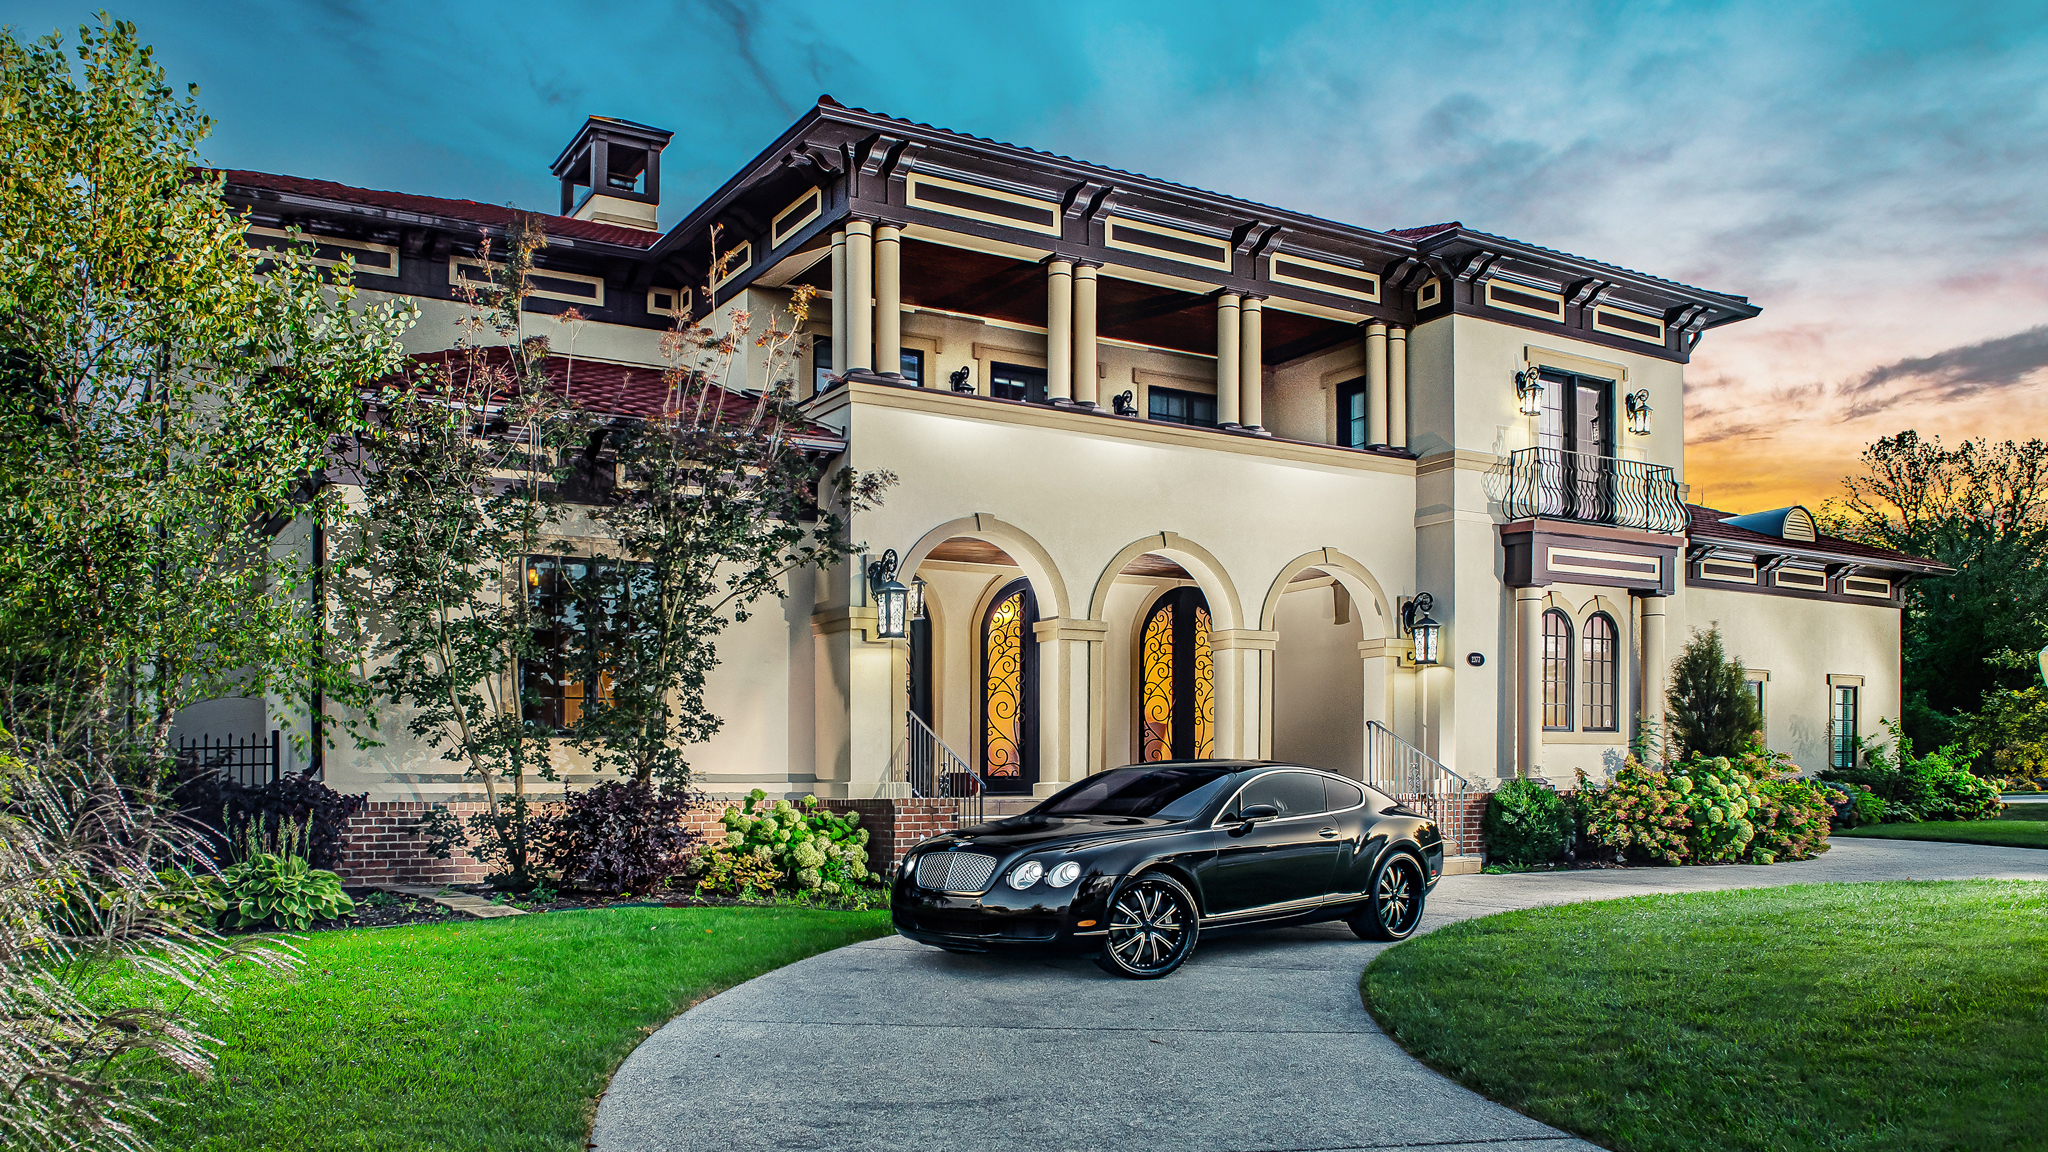 Breathtaking Twilight Imagery - that sets your property apart from all others